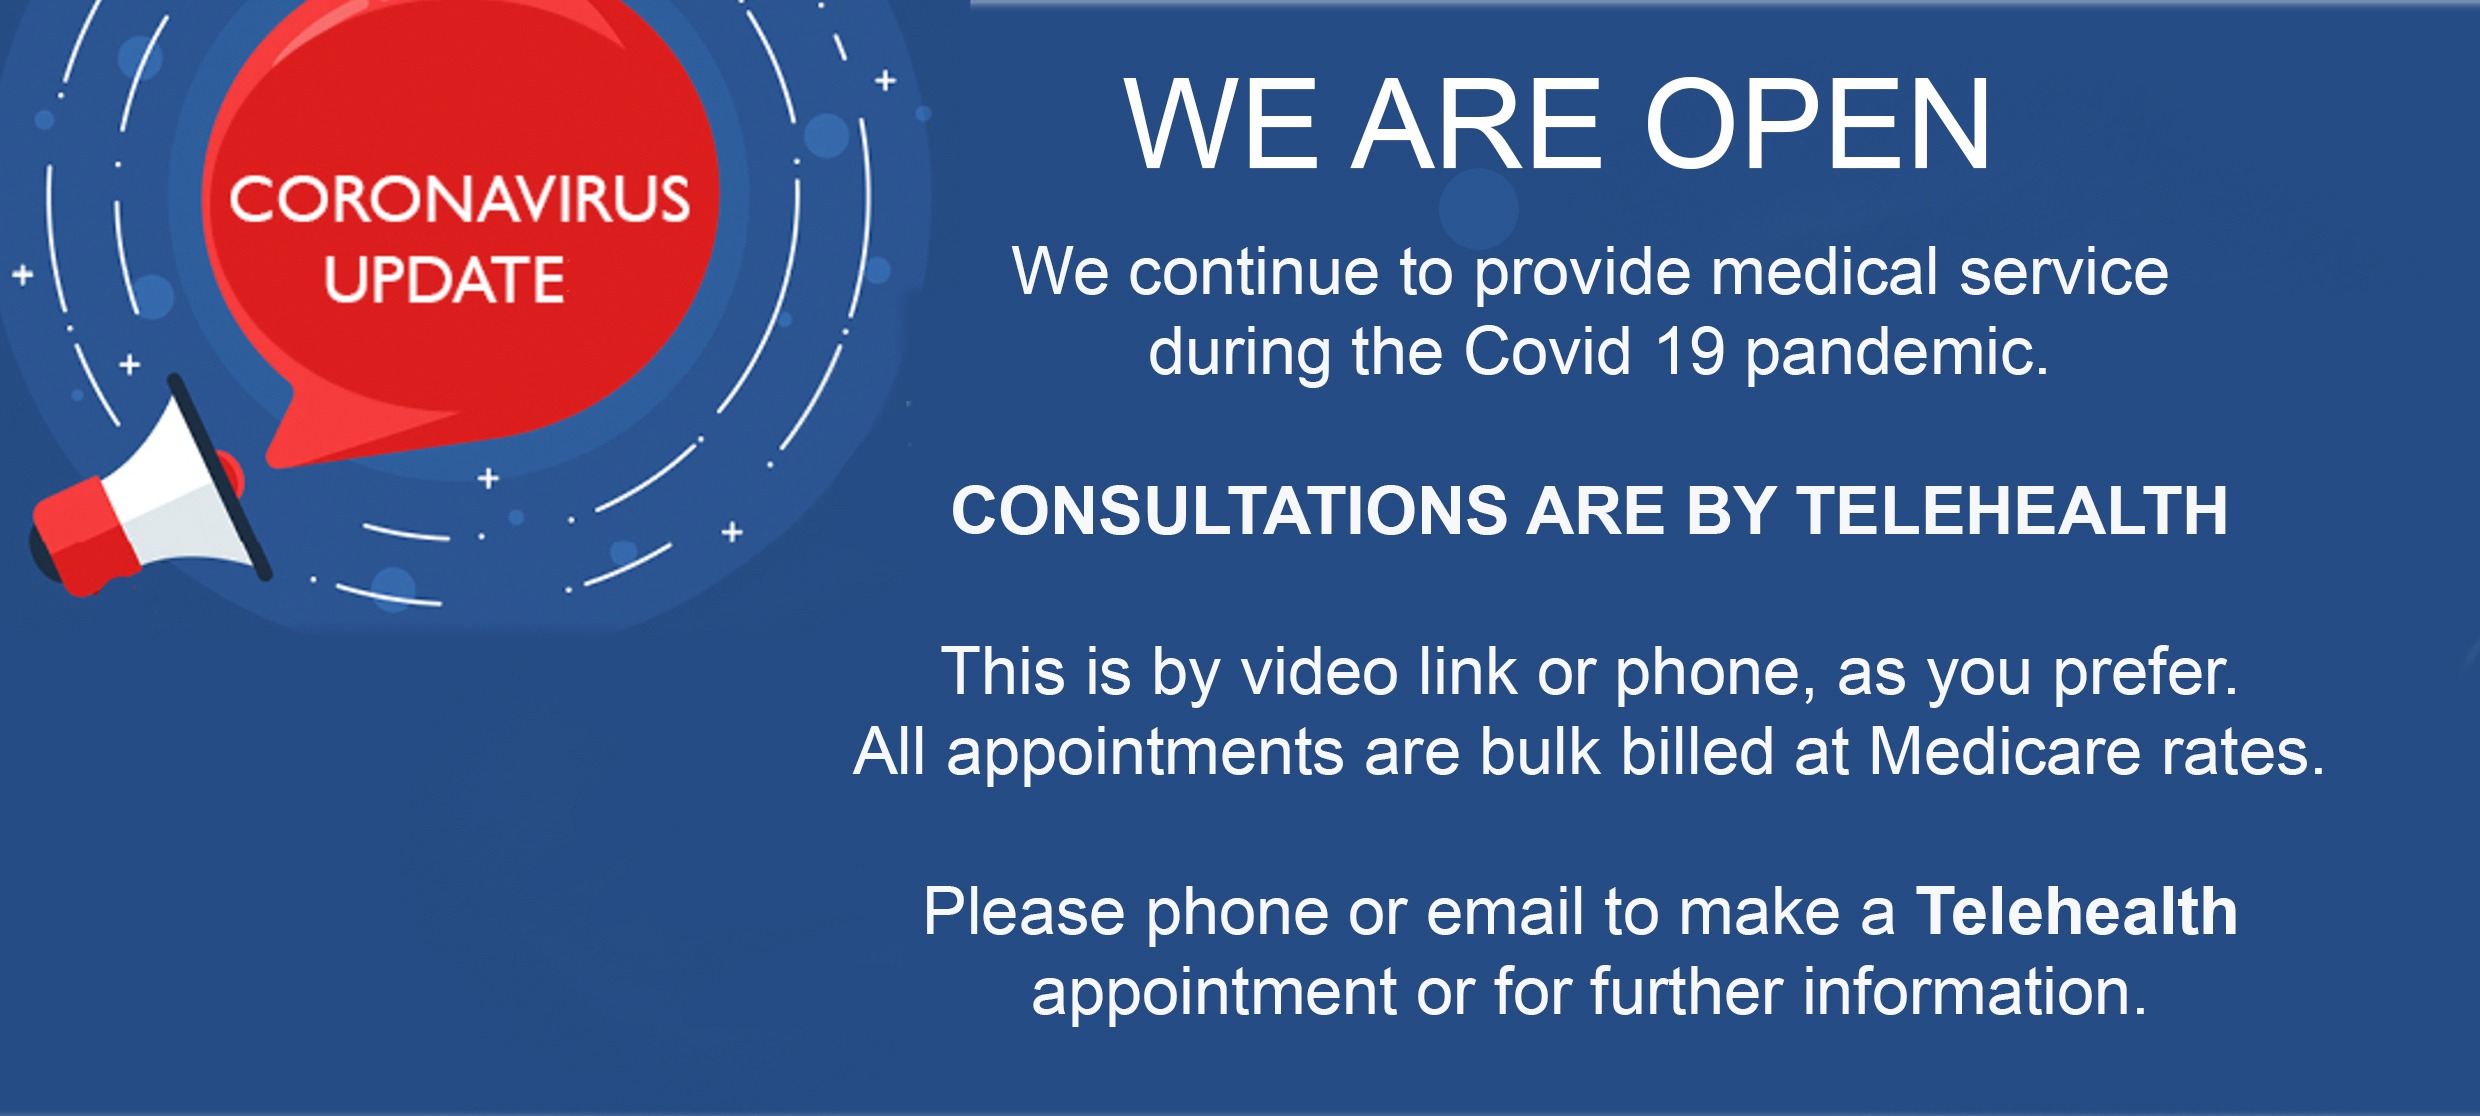 We continue to provide medical service  during the Covid 19 pandemic, CONSULTATIONS ARE BY TELEHEALTH This is by video link or phone, as you prefer.All appointments are bulk billed at Medicare rates.Phone or email to make a Telehealth appointment or for further information. We continue to provide medical service  during the Covid 19 pandemic, CONSULTATIONS ARE BY TELEHEALTH This is by video link or phone, as you prefer.All appointments are bulk billed at Medicare rates.Phone or email to make a Telehealth appointment or for further information.